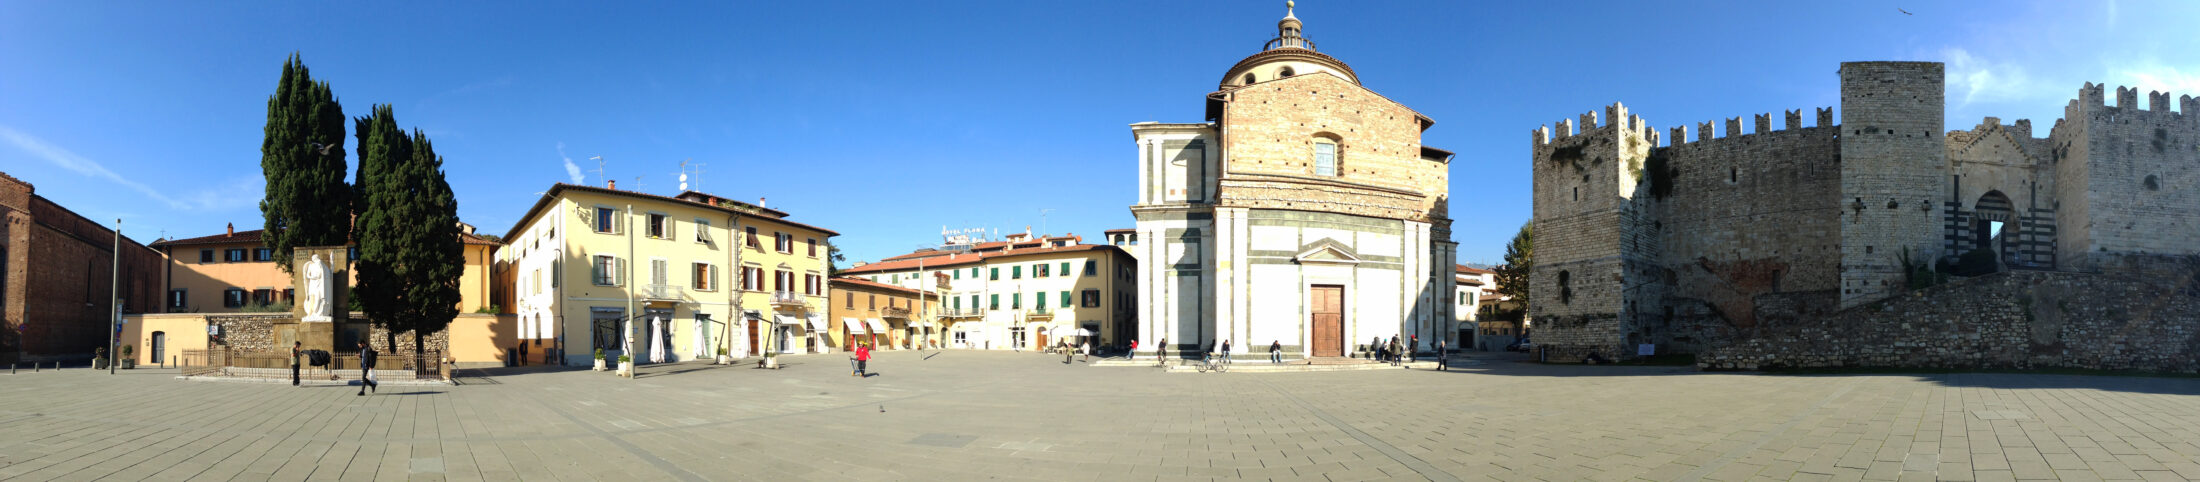 Travel blog about Prato